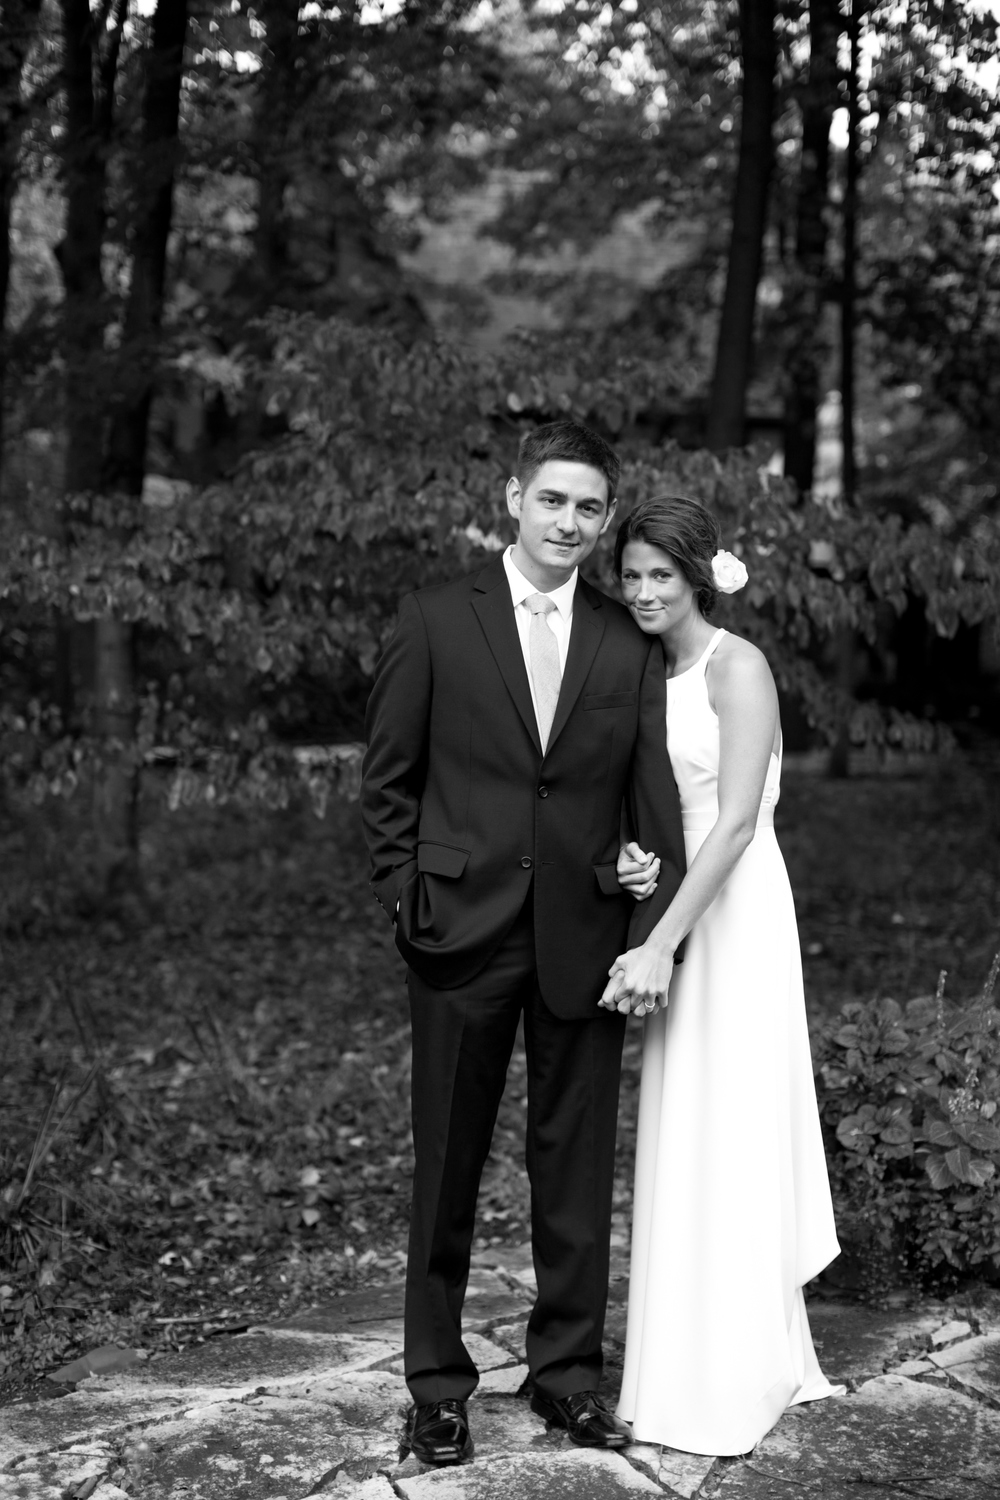 WASB wedding, 2012, Olin Park in Madison.